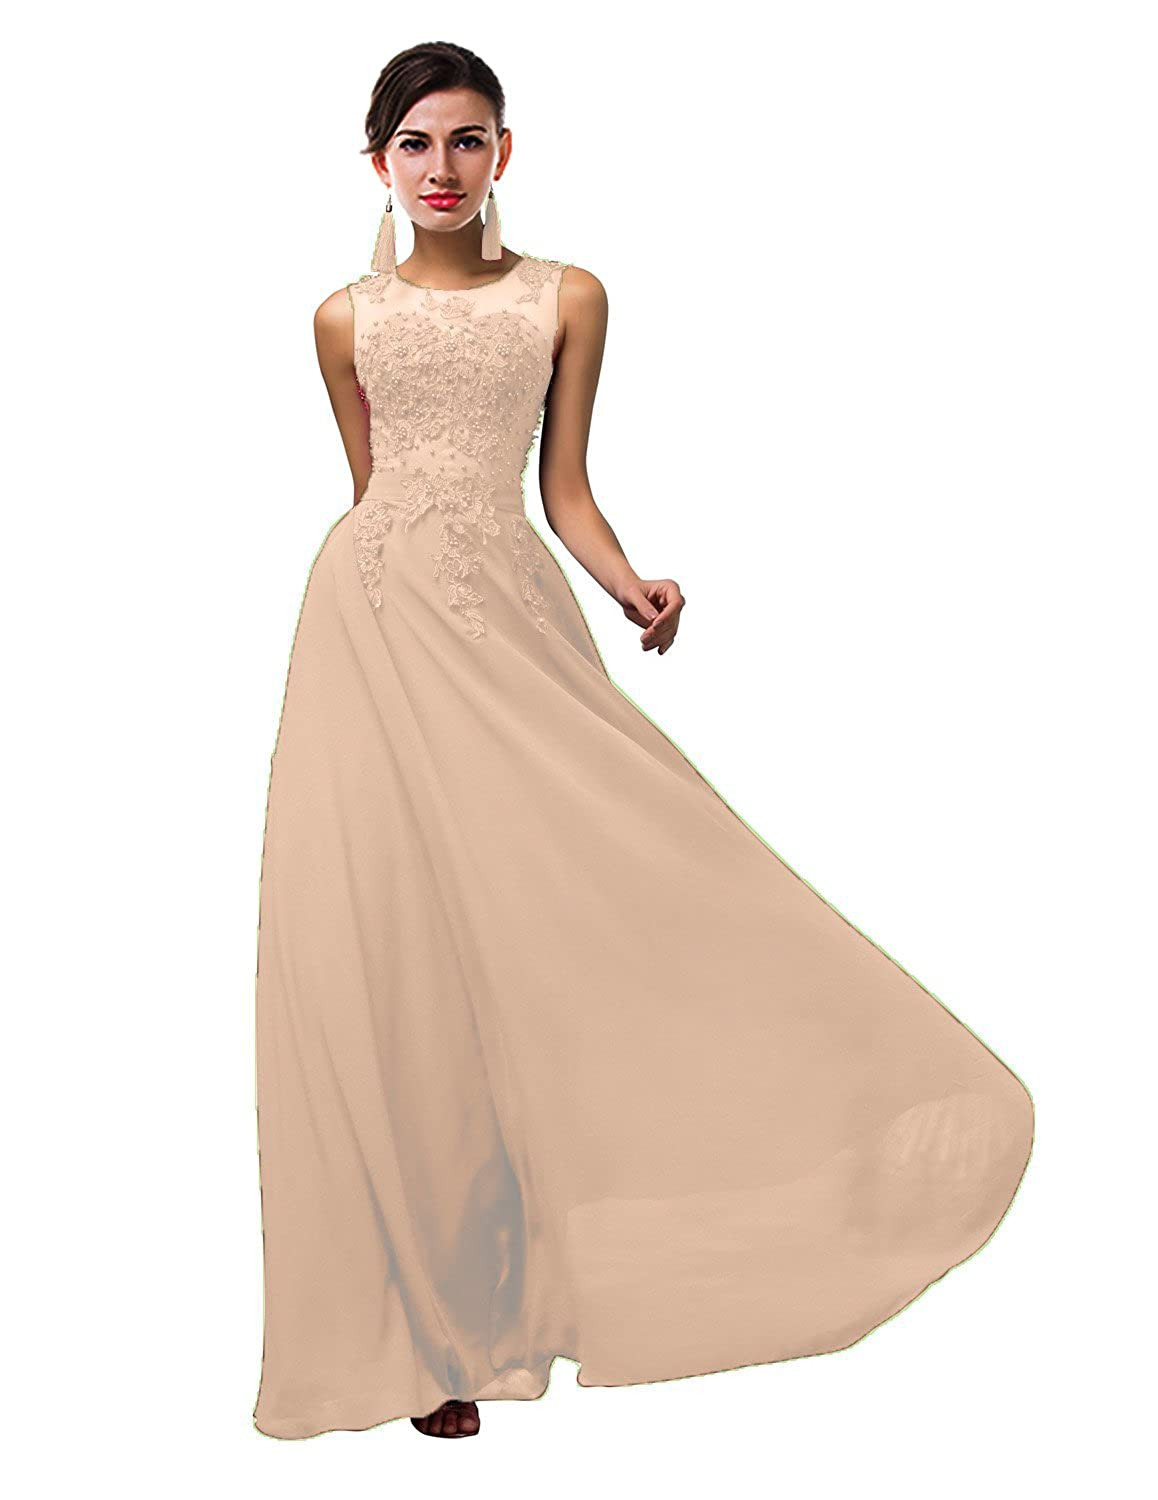 Champagne CaliaDress Women Tulle Appliques Long Bridesmaid Dress Prom Evening Gowns C002LF